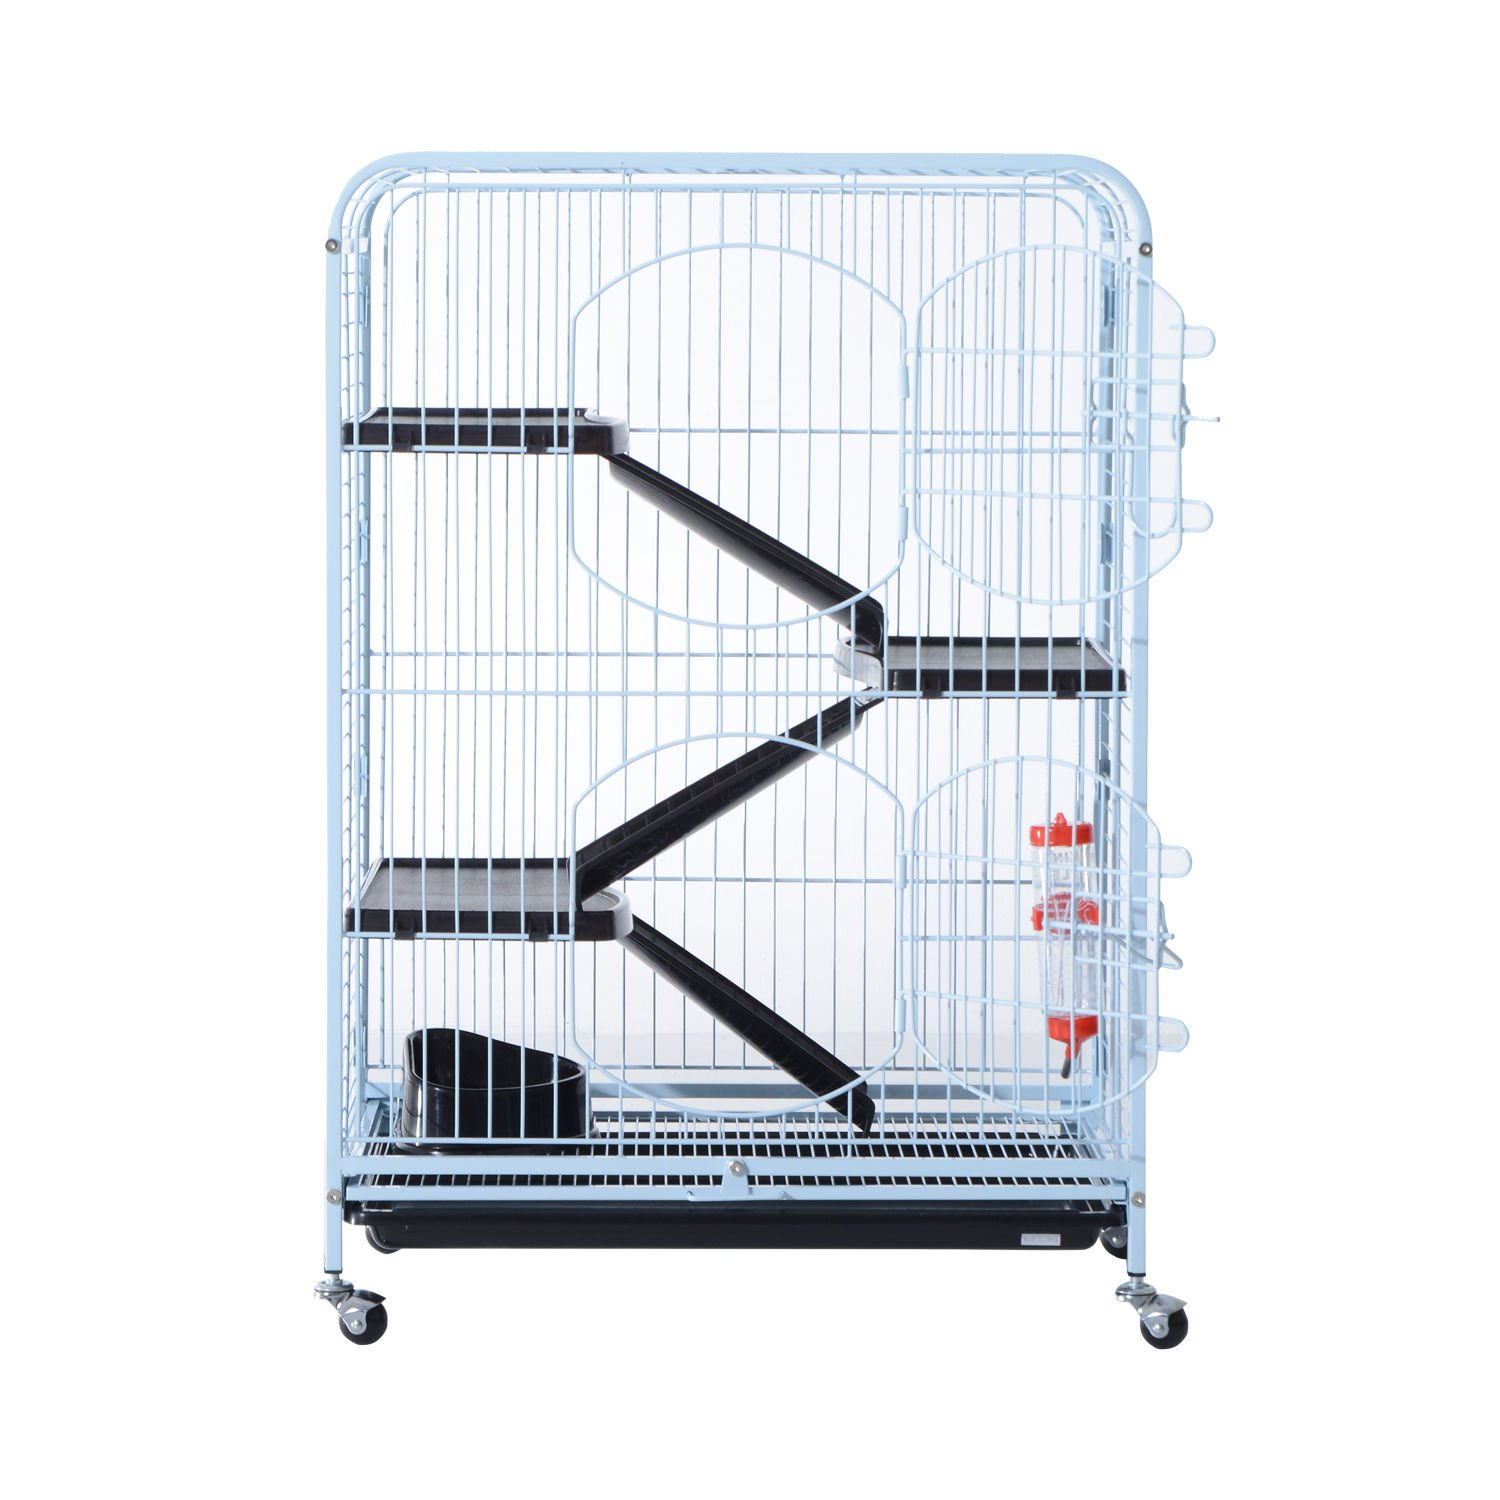 PawHut 37'' 4 Level Indoor Portable Pet Habitat Small Animal Cage Kit With Plastic Shelves And Ramps - White by PawHut (Image #3)